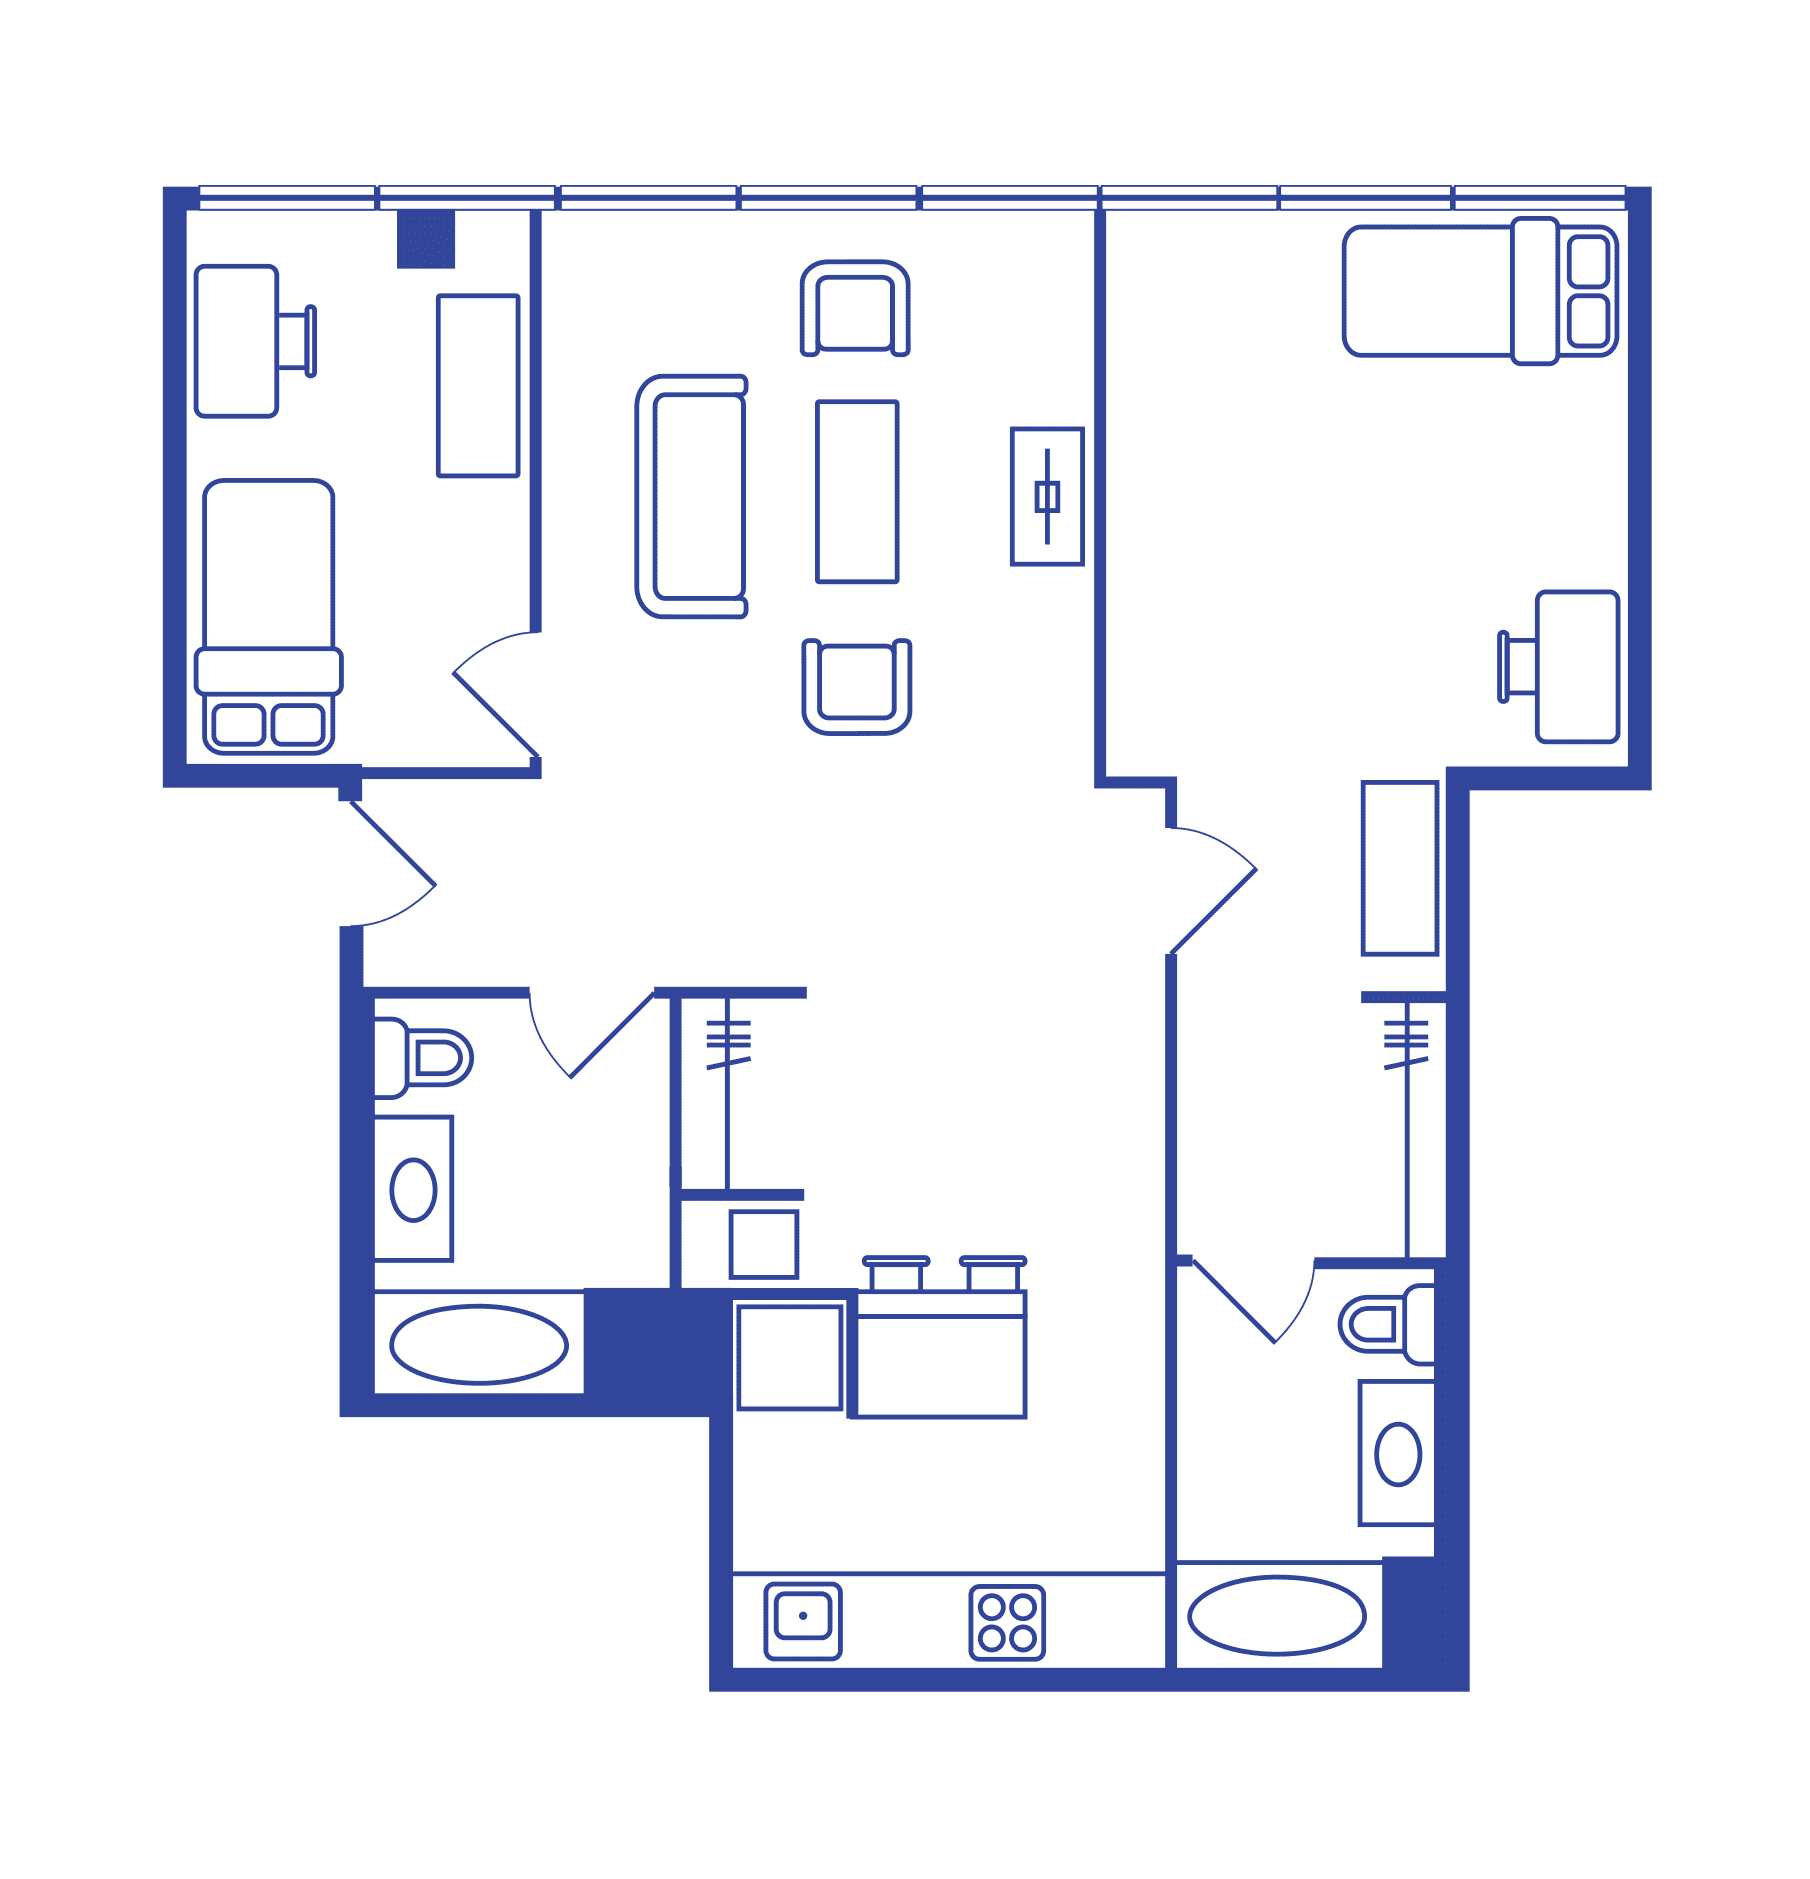 2 Bedroom Floorplan 5